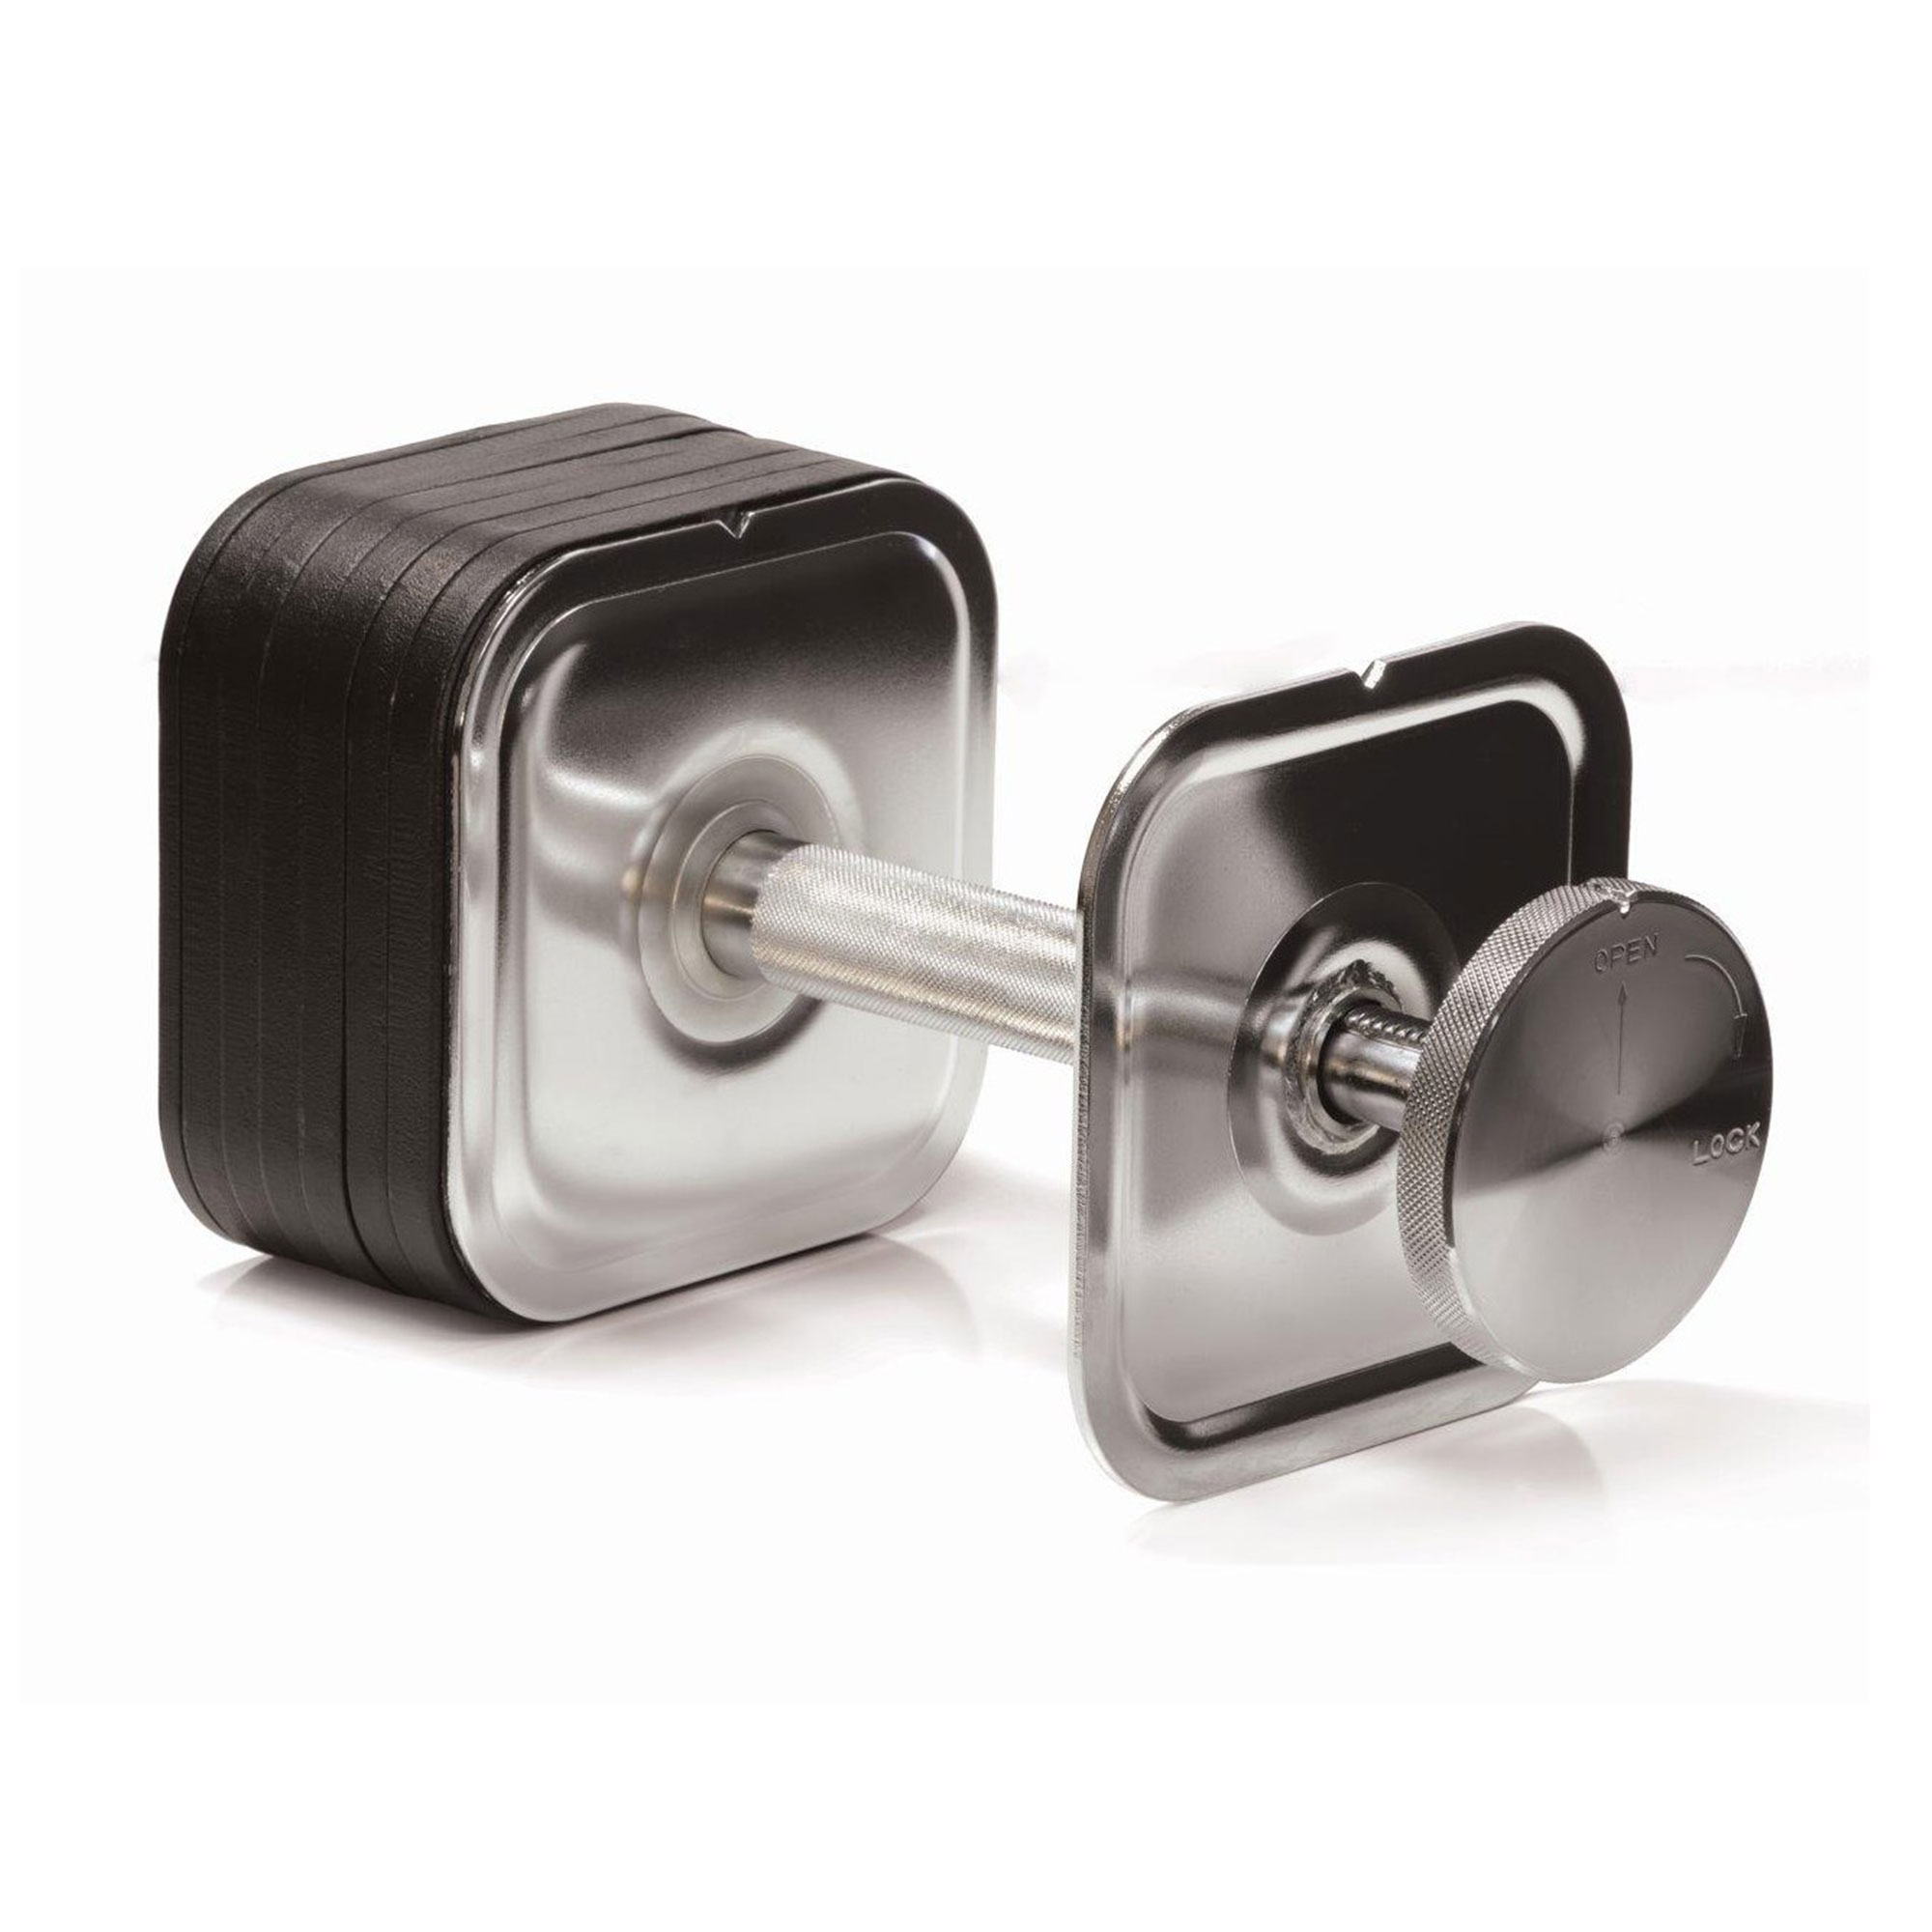 IronamsterUK Quick-Lock Dumbbell